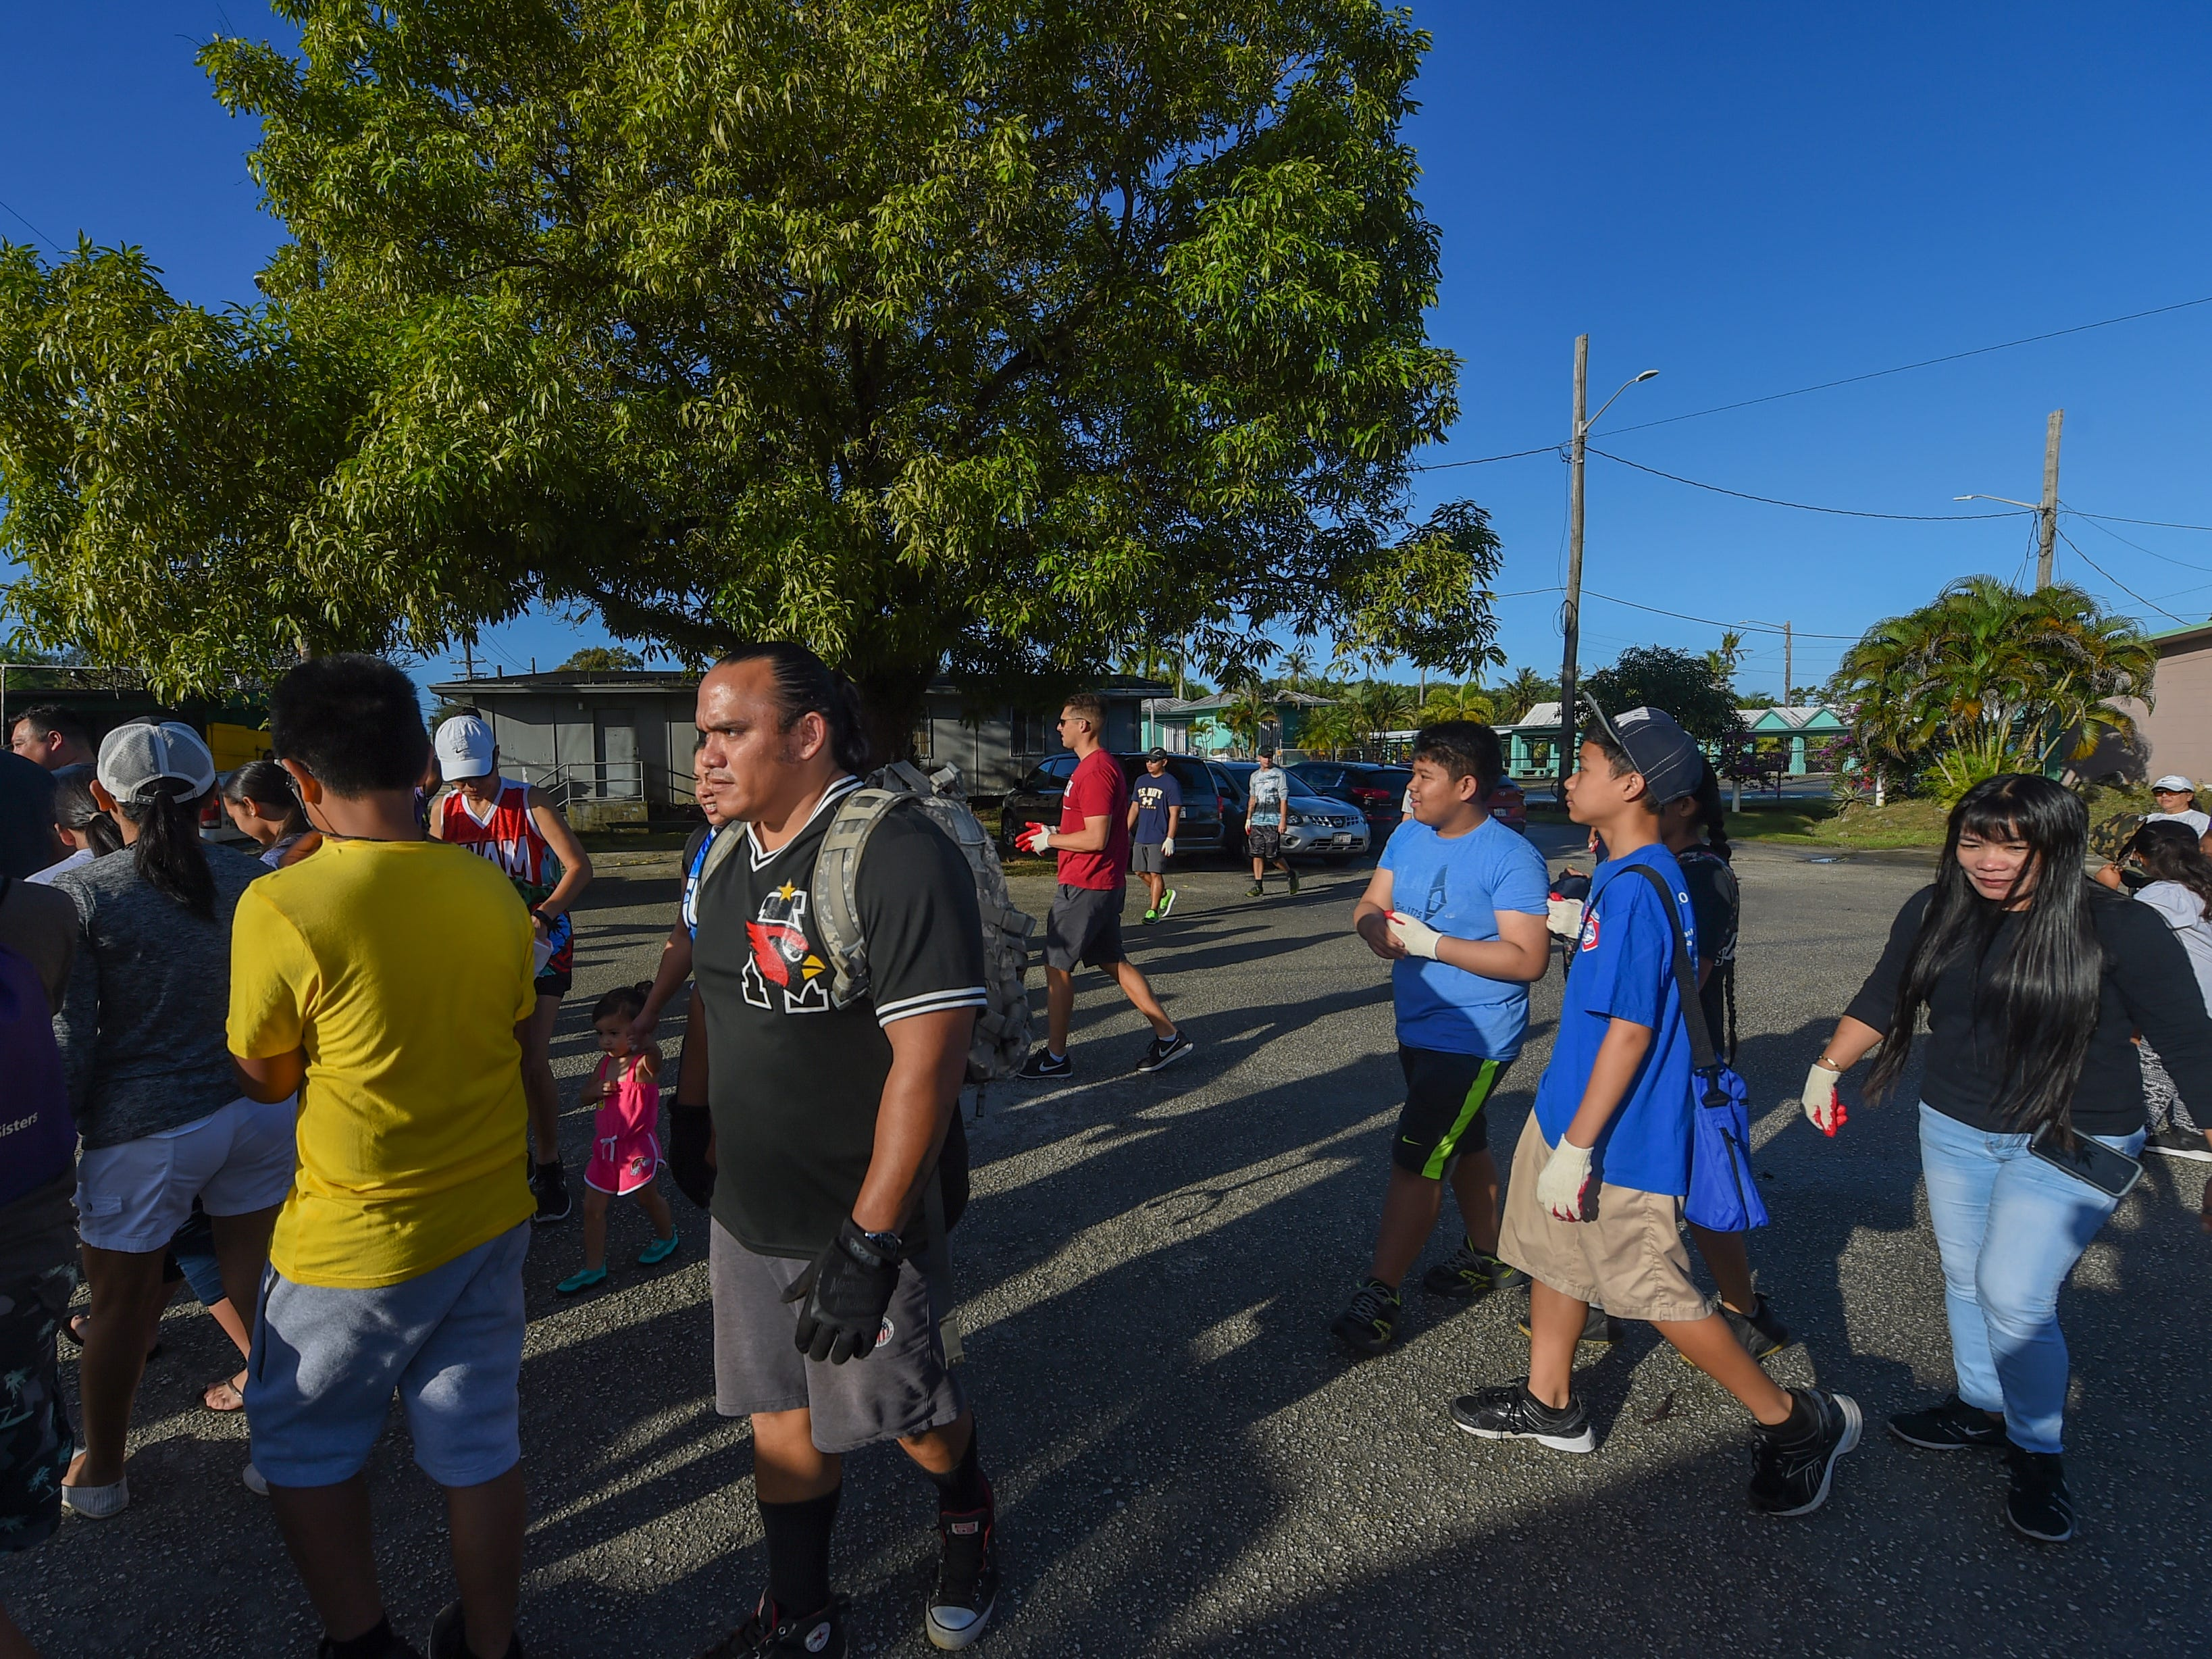 Volunteers gather at the Agat Community Center for the annual Na' Bonita Hagat village cleanup on Feb. 9, 2019.